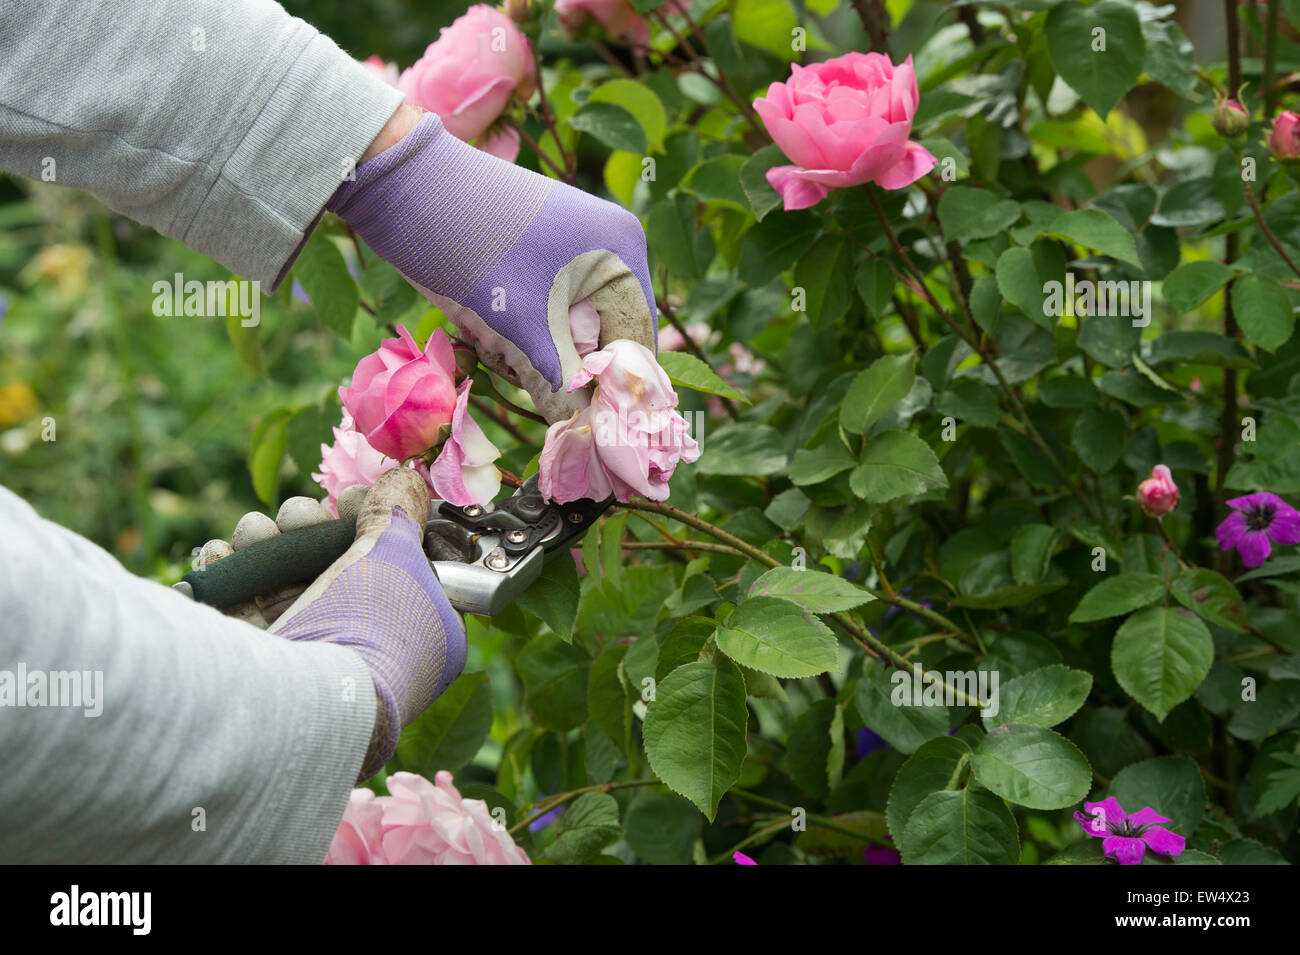 Gardener wearing gardening gloves deadheading Rosa Gertrude Jekyll rose with secateurs in a garden - Stock Image